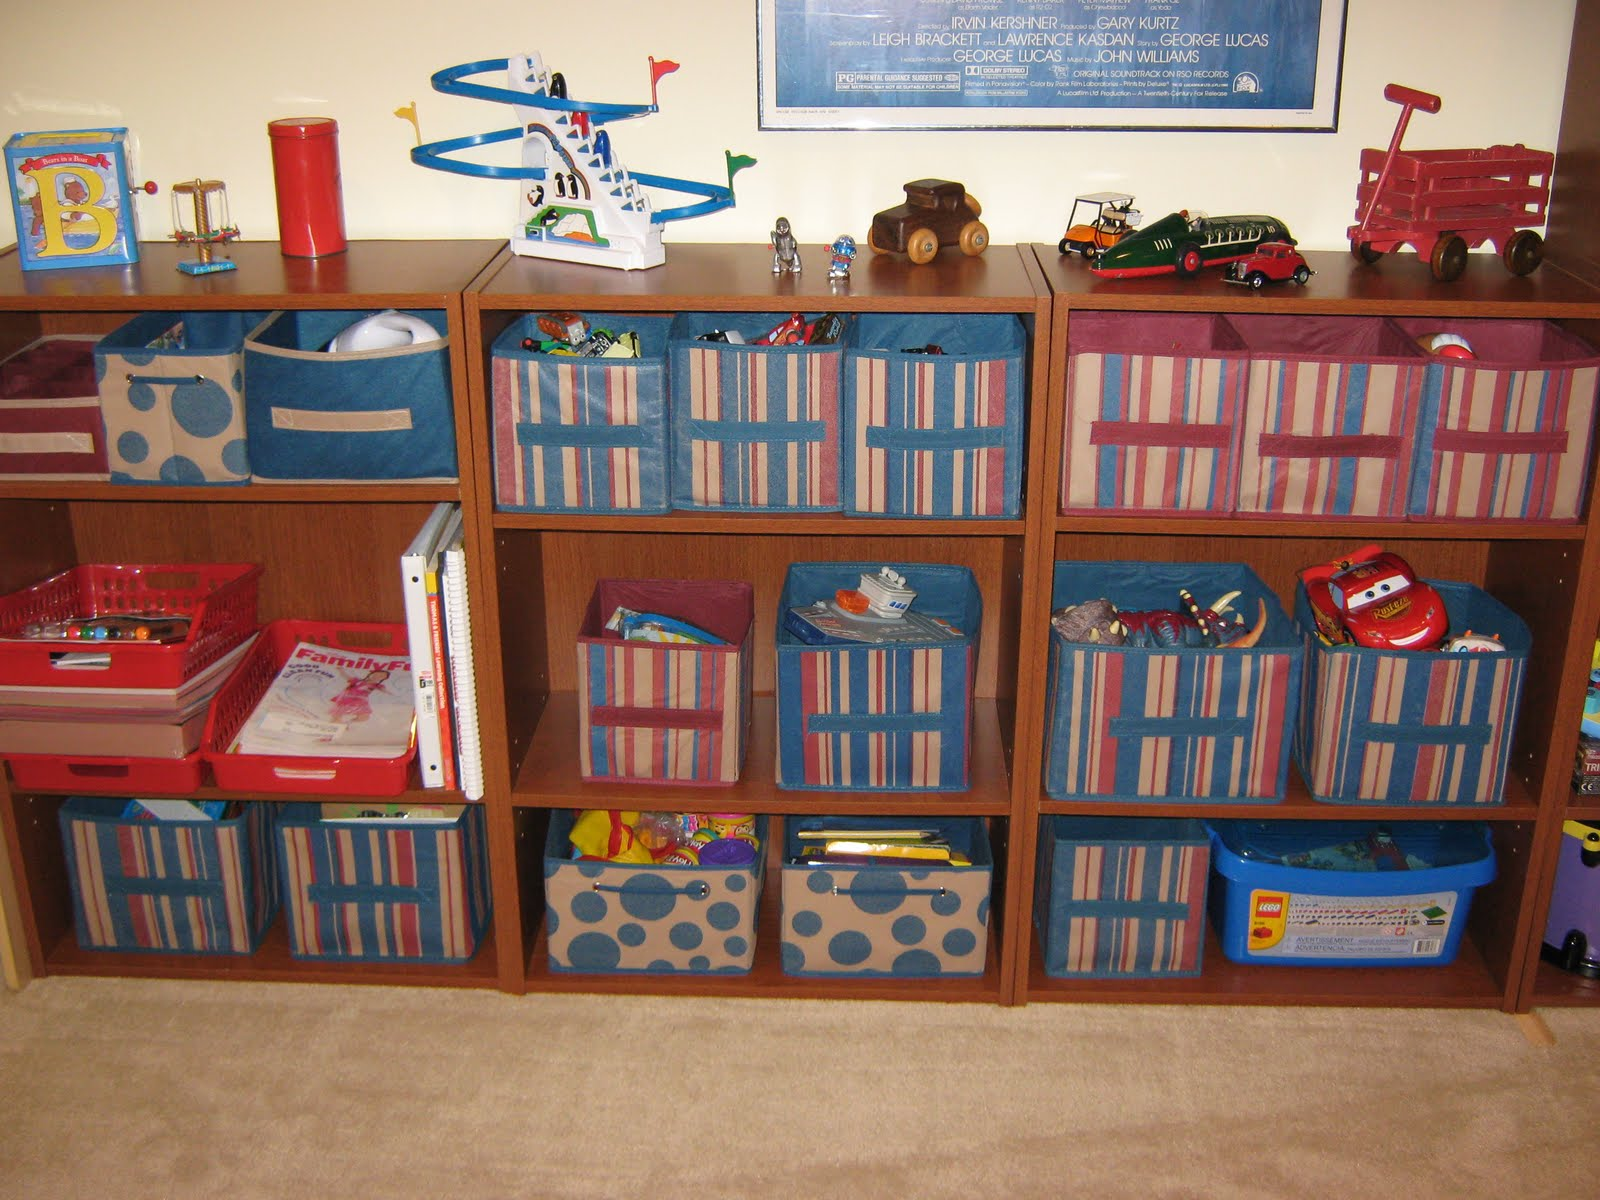 Fake it frugal get organized play room organization for Room organization